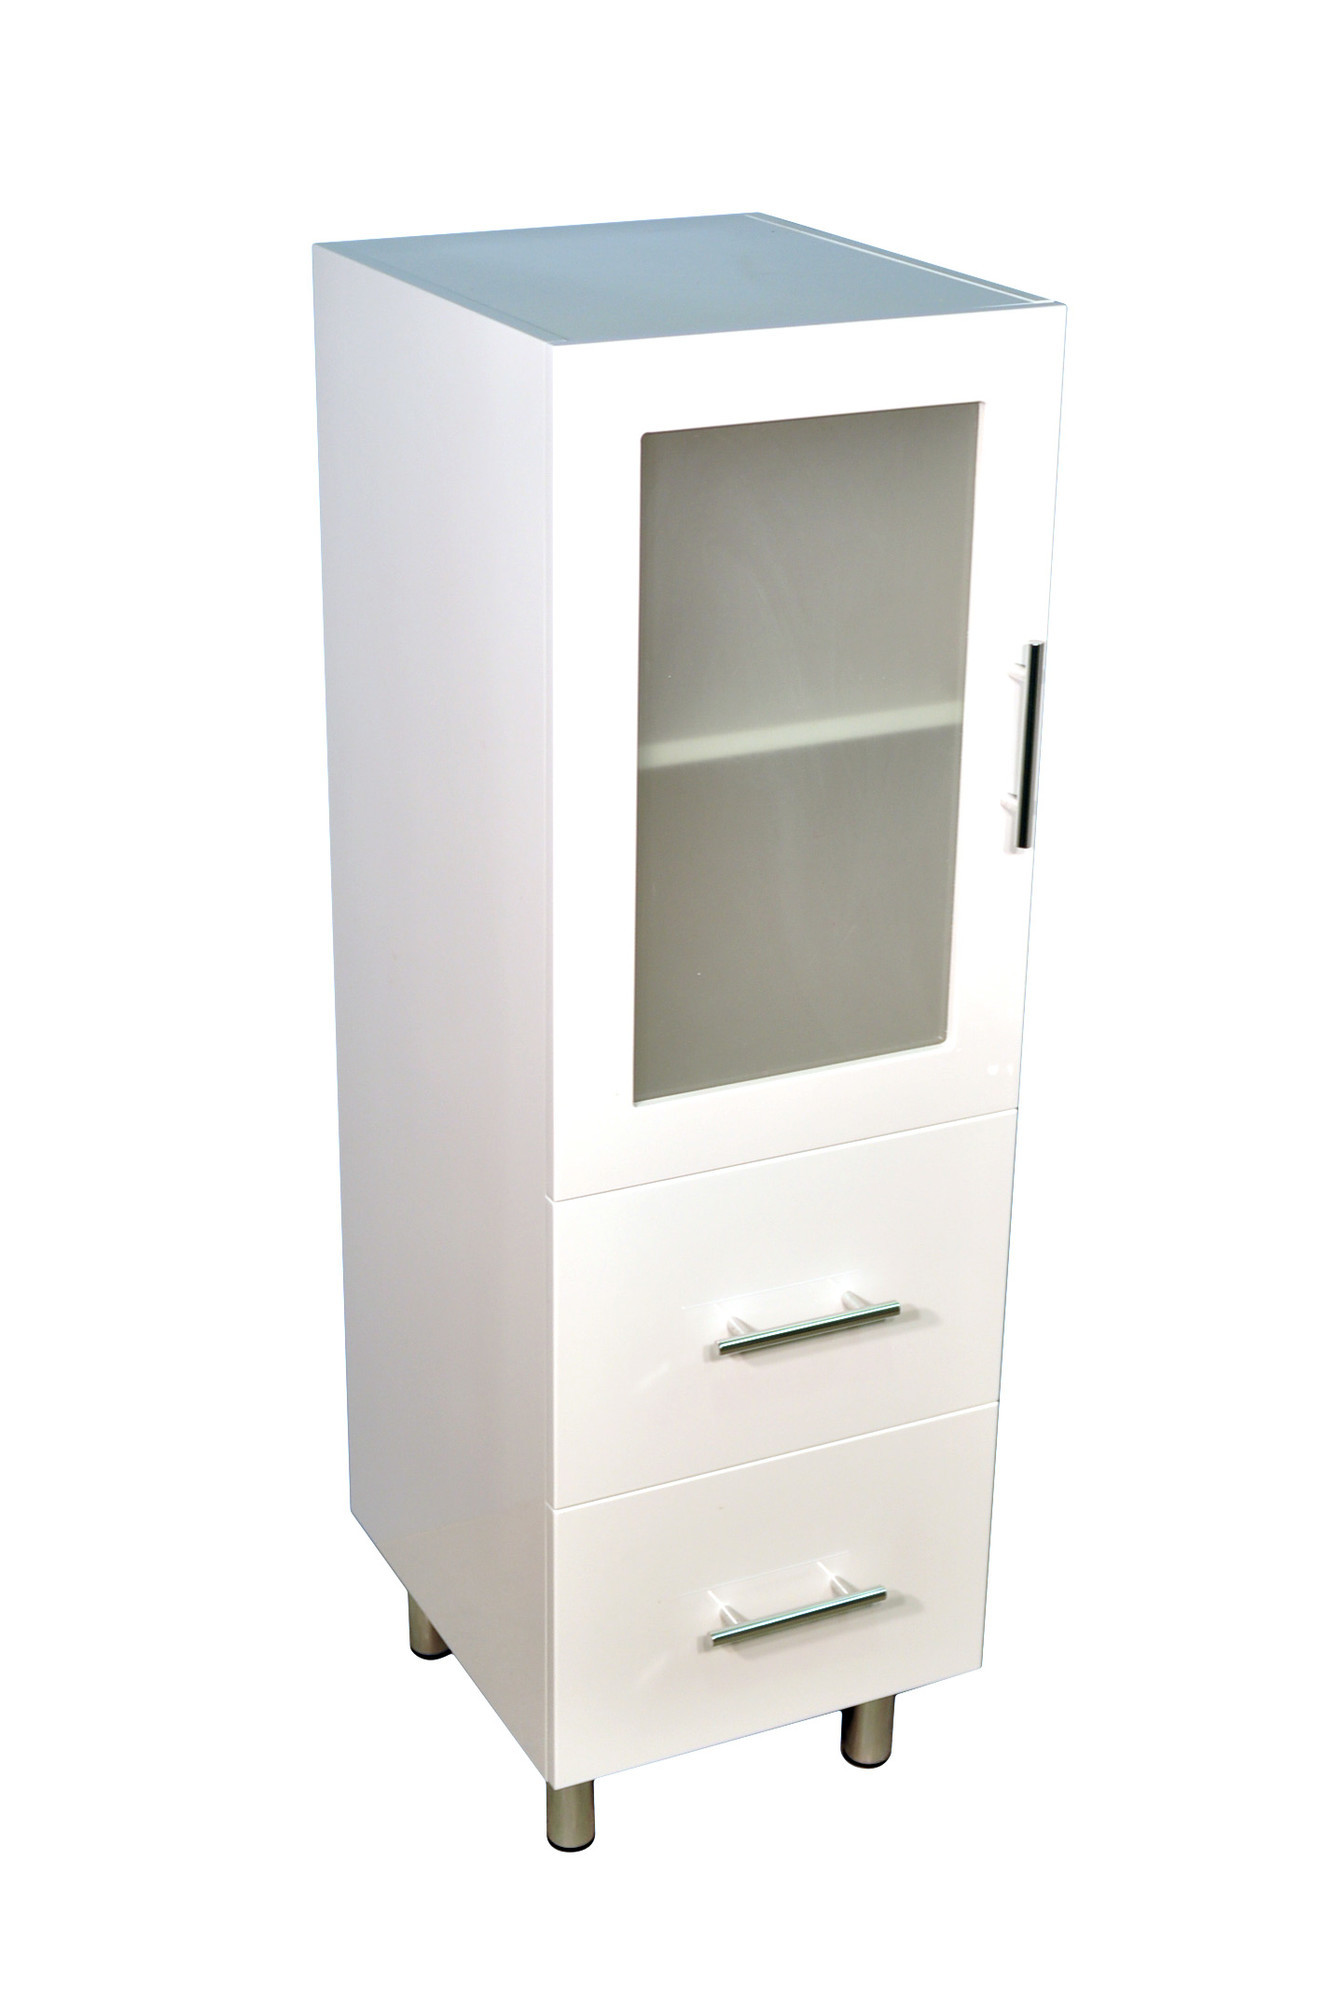 New 1200 tall boy bathroom cabinet with two drawers ebay for Bathroom cabinets ebay australia